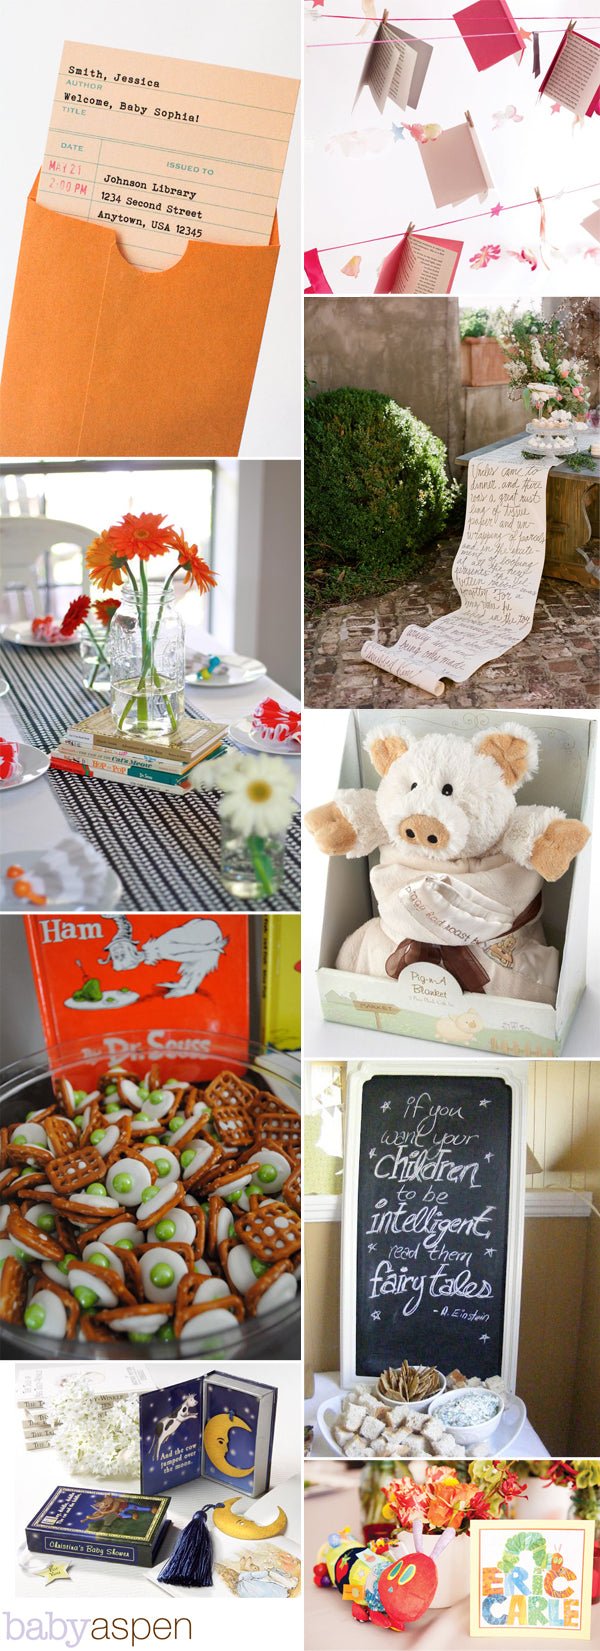 Book Themed Baby Shower | Story Book Baby Shower | Baby Aspen Blog